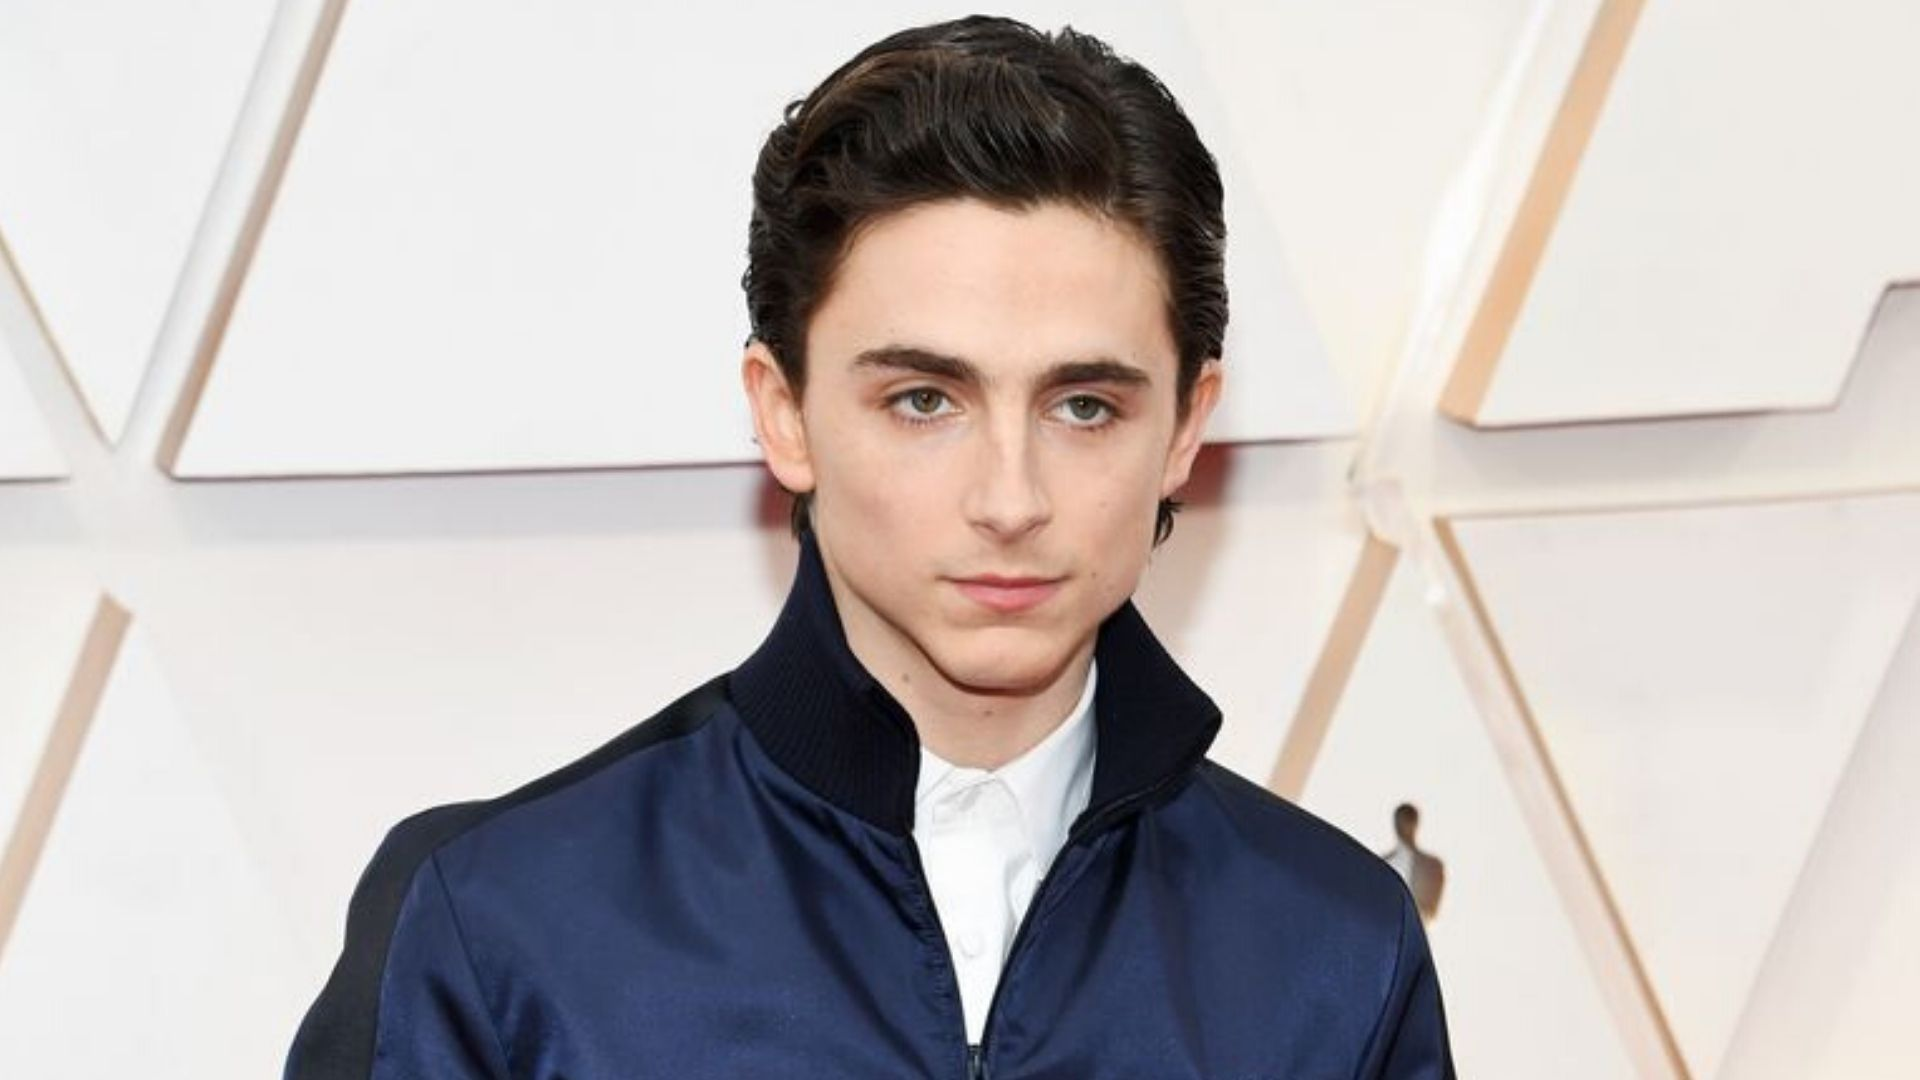 Twitter Thinks Timothee Chalamet Looked Like A Chic Mechanic At The 2020 Oscars Cosmopolitan Middle East